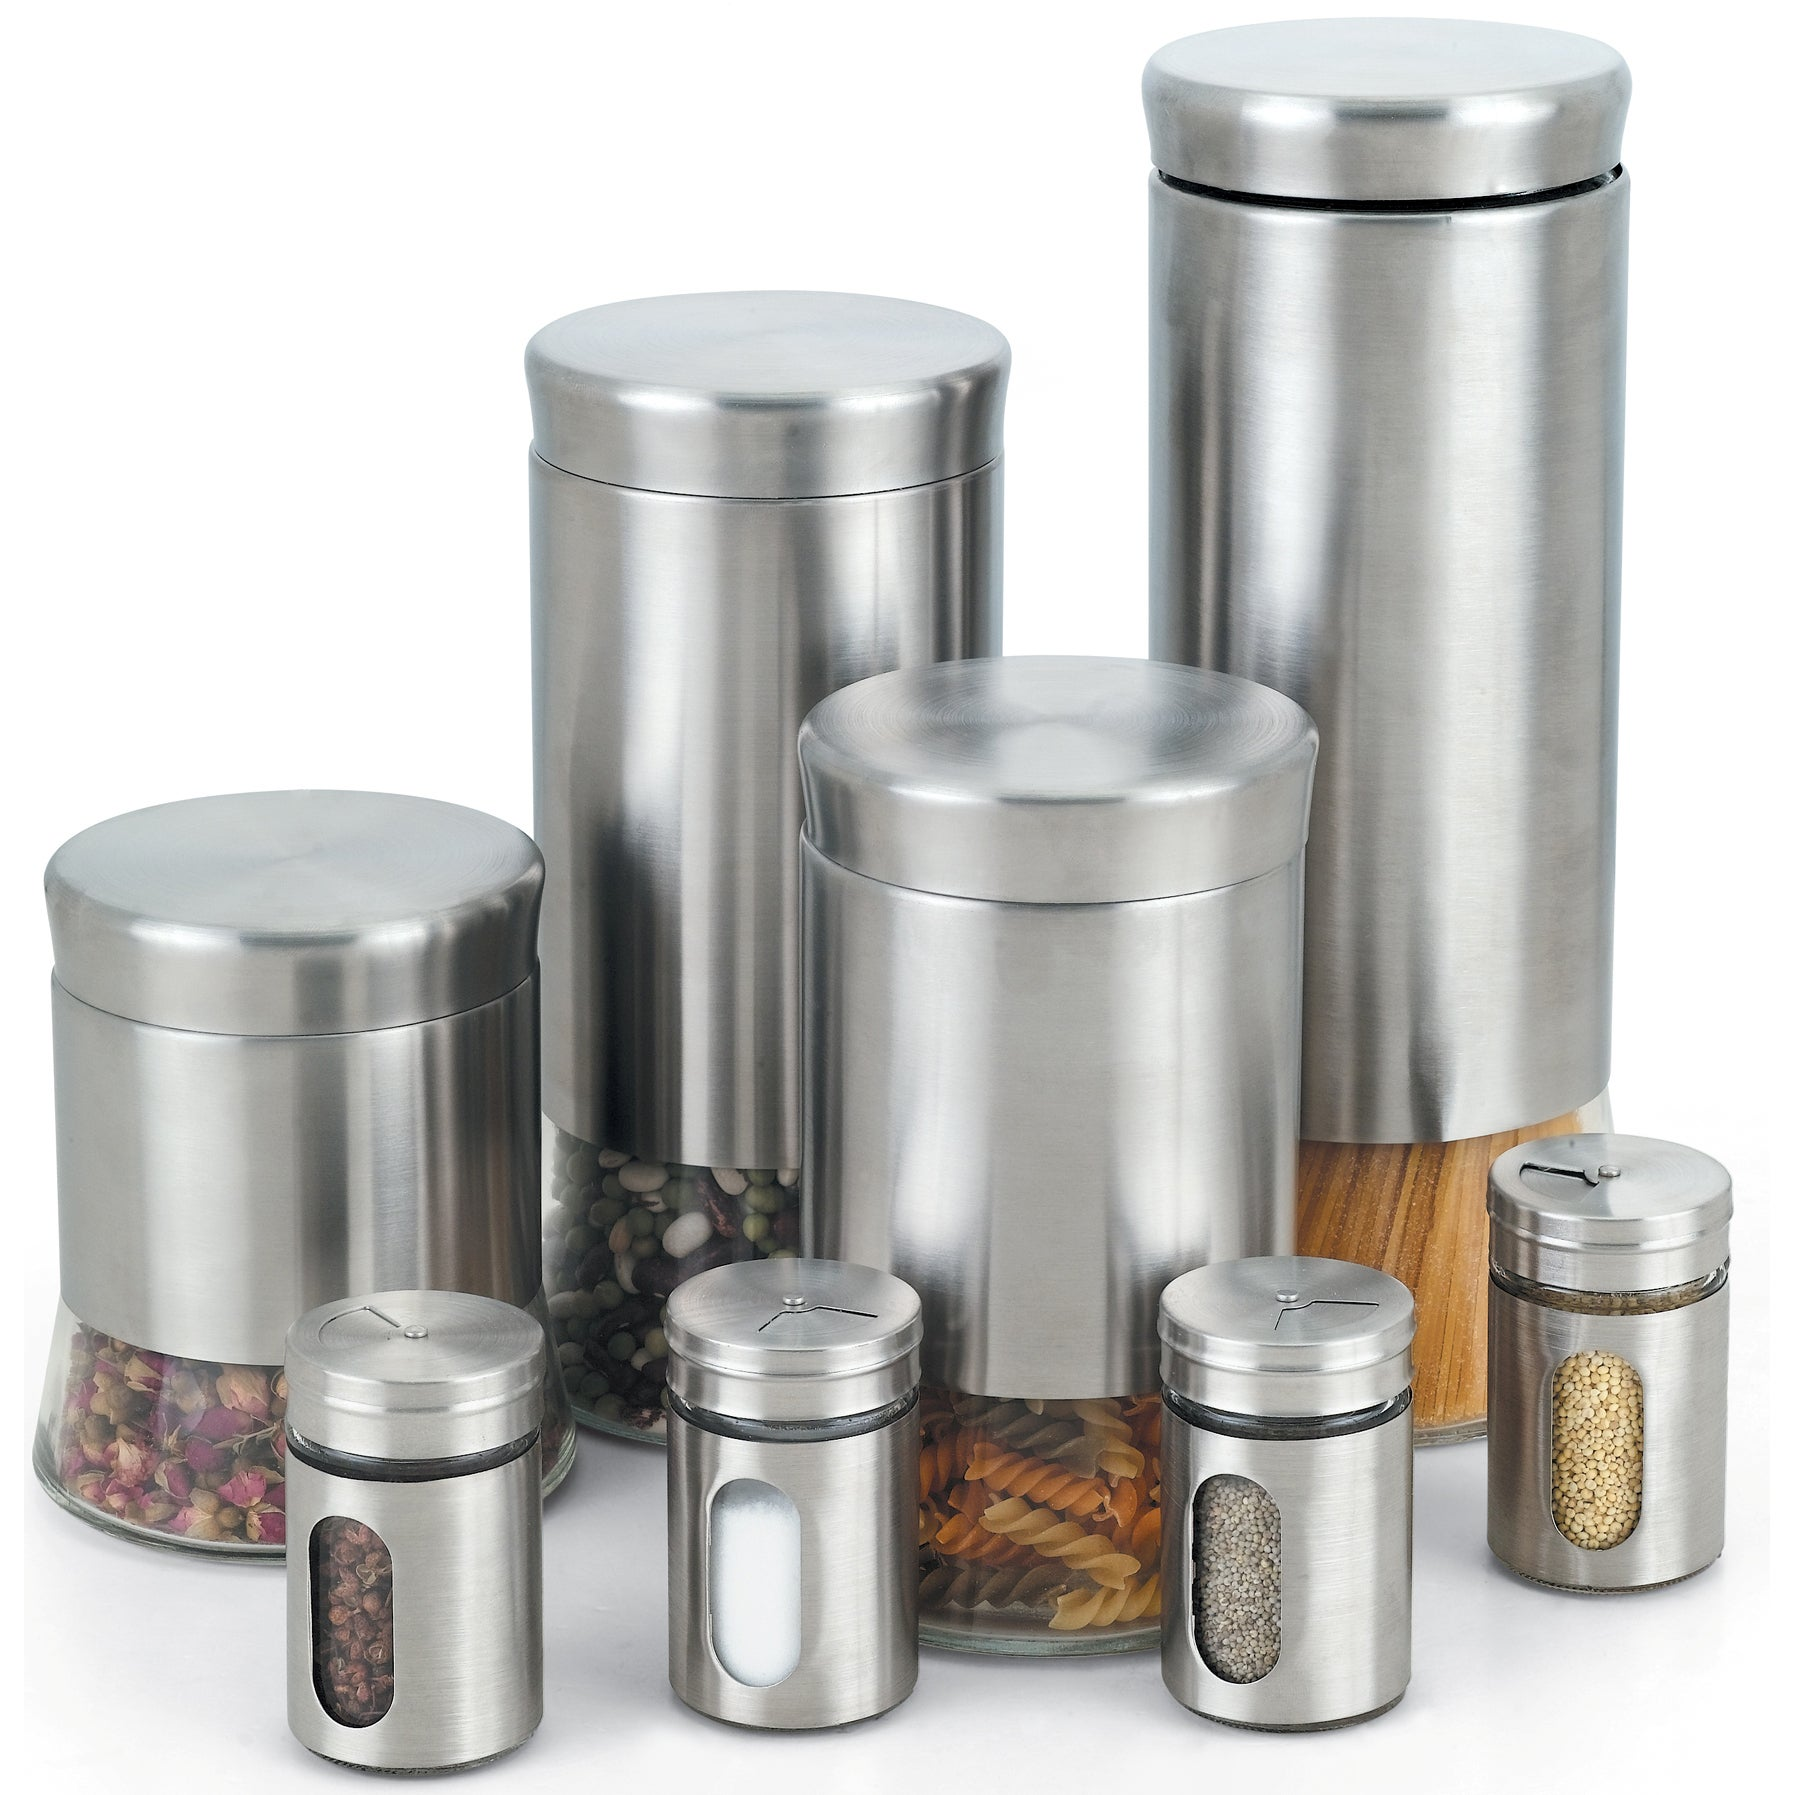 Shop Cook N Home 8-Piece Stainless Steel Canister and Spice Jar Set ...